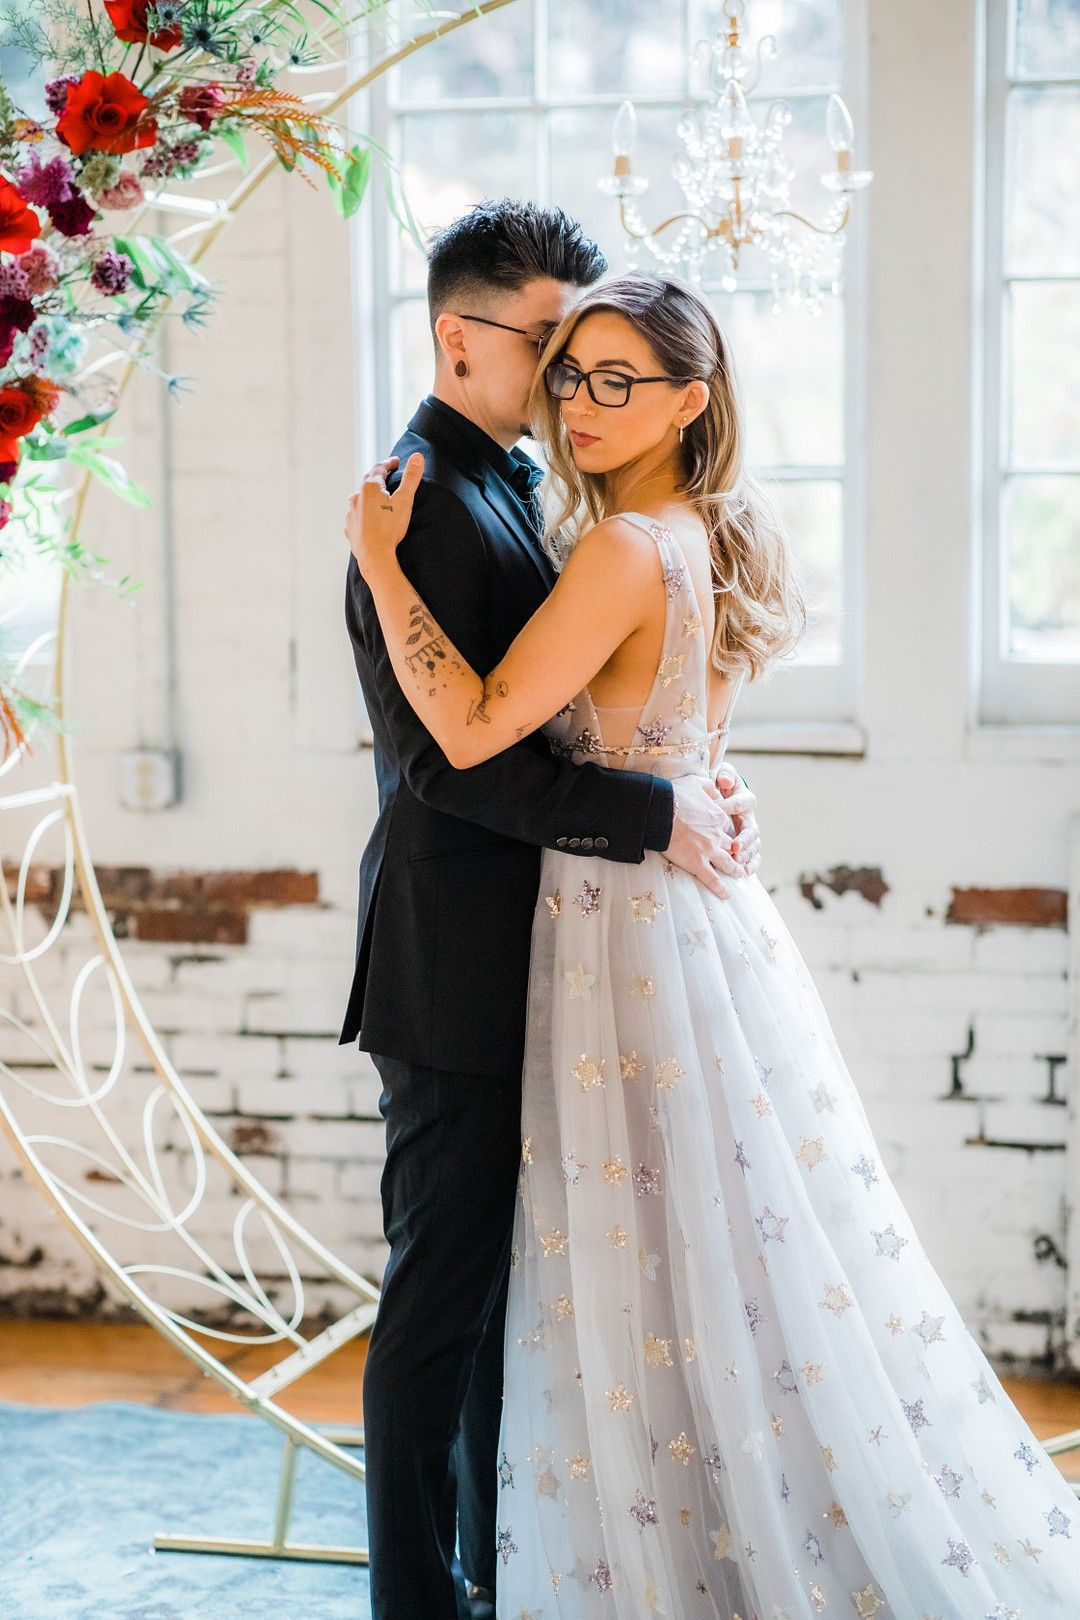 ROMANTIC WHIMSICAL WEDDING INSPIRATION WITH A GALAXY STAR WEDDING DRESS | Bespoke-Bride: Wedding Blo